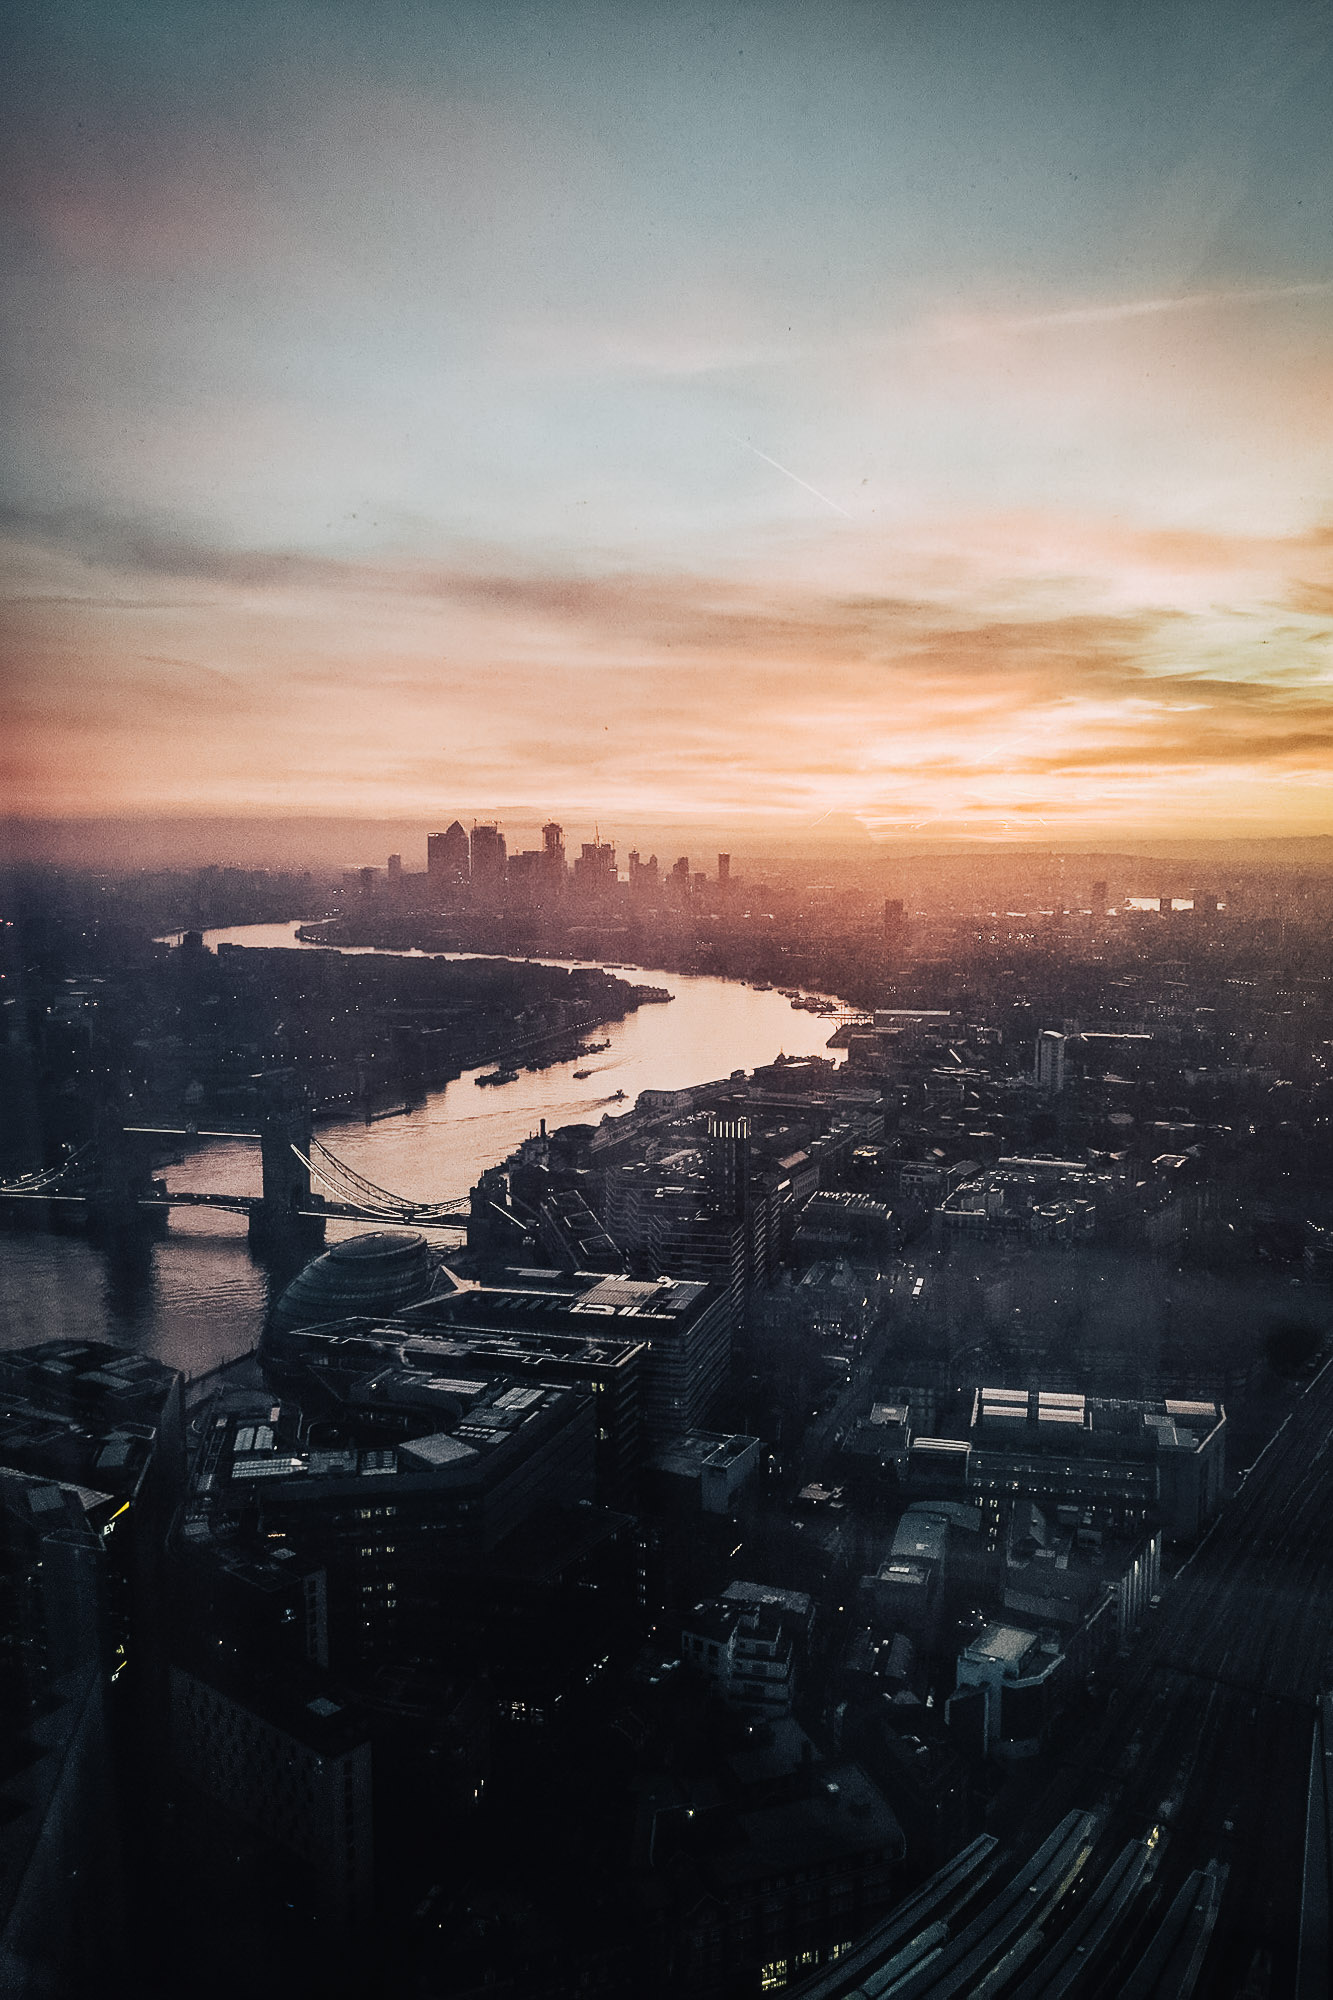 Sunrise over east London, view from Shangri-la Hotel at The Shard